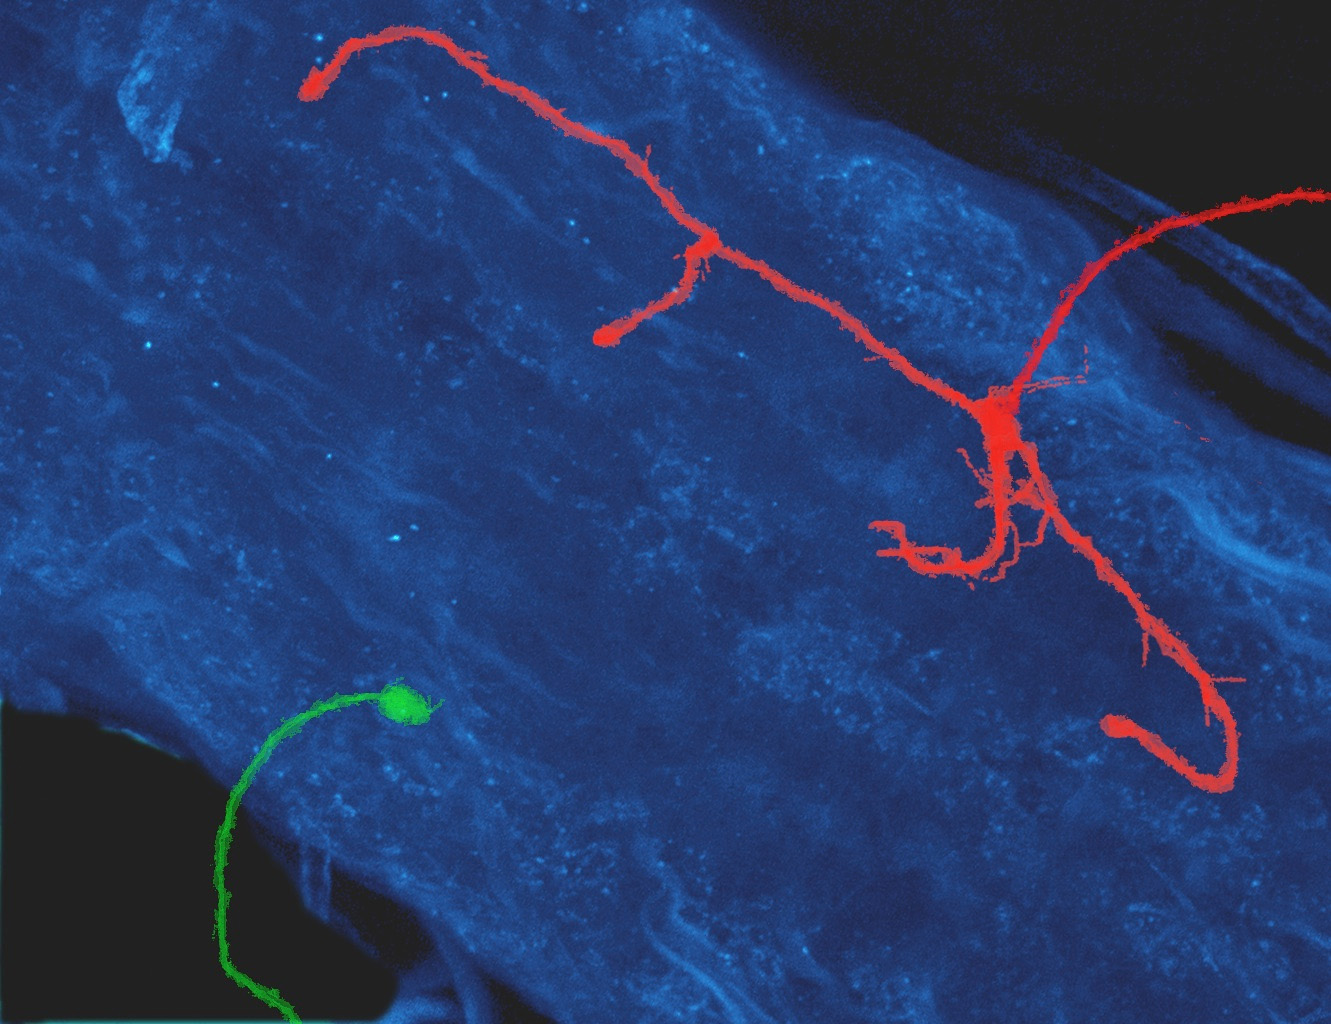 The protrusion of a neuron without Dscam protein (green) and that of a neuron with an abnormally high level of Dscam protein (red). The protrusions are overlaid on the fruitfly's equivalent of the human spinal cord (blue). Image credit: Xin Wang